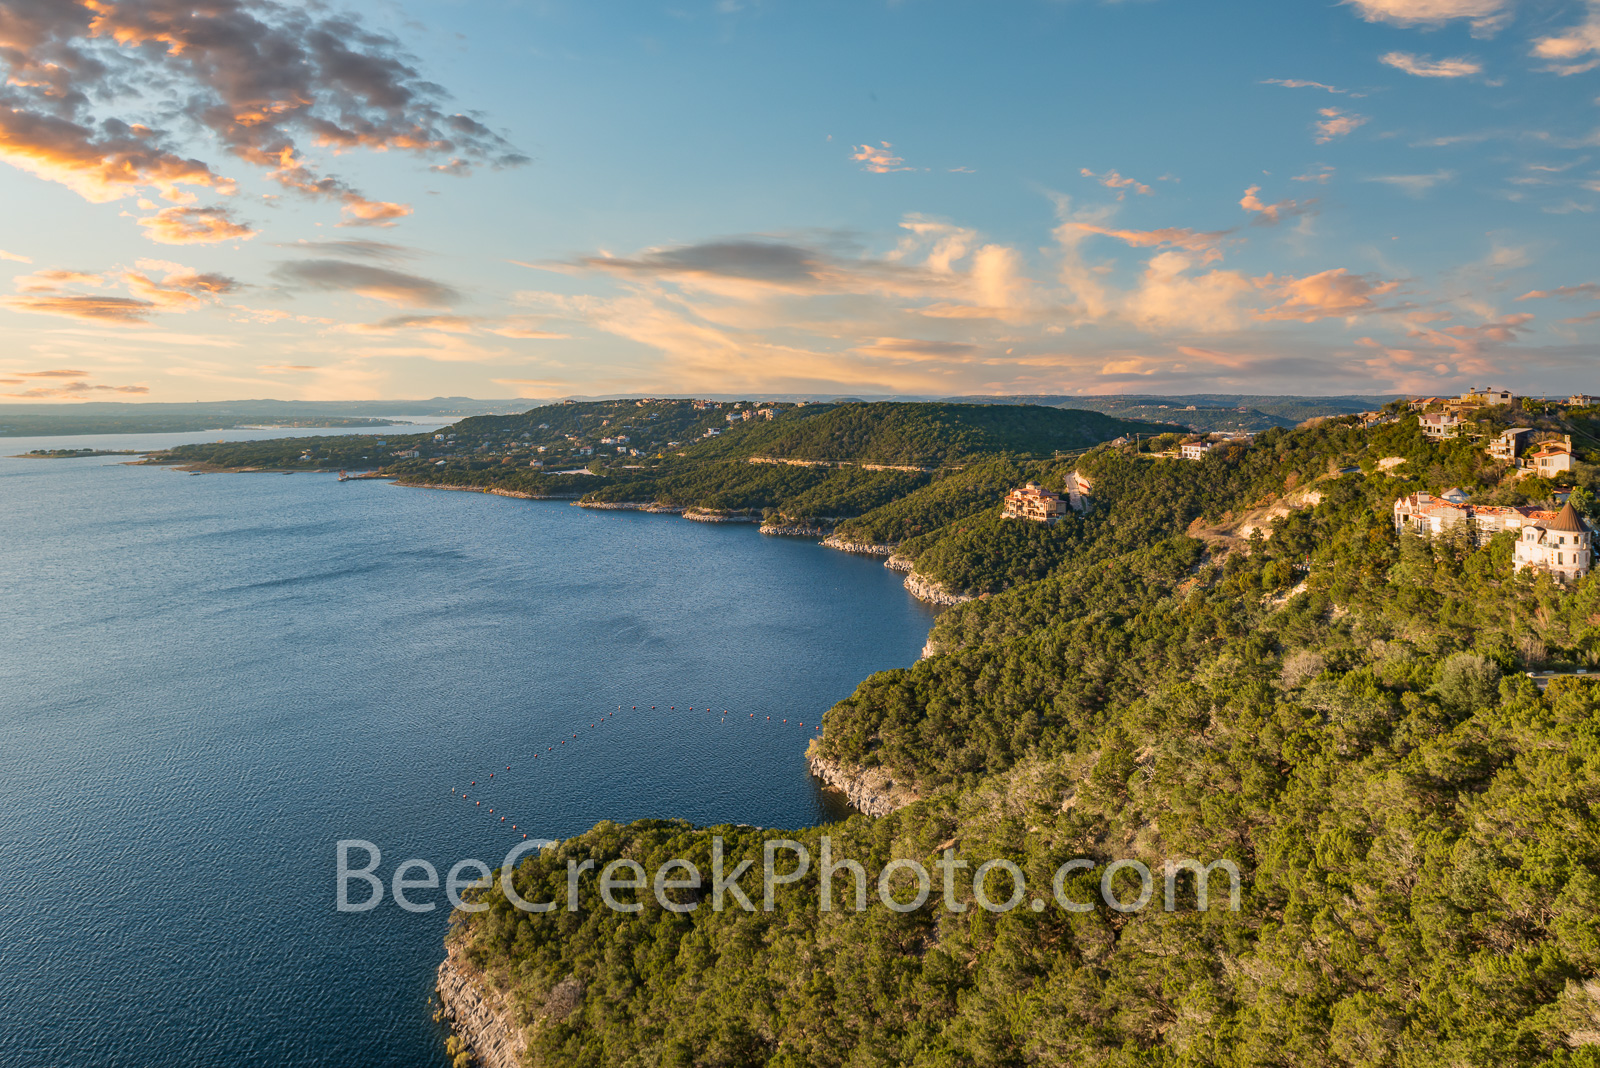 Lake Travis Hill Side View - A hill side view of lake travis from above.  This images captures the shoreline of lake travis from...